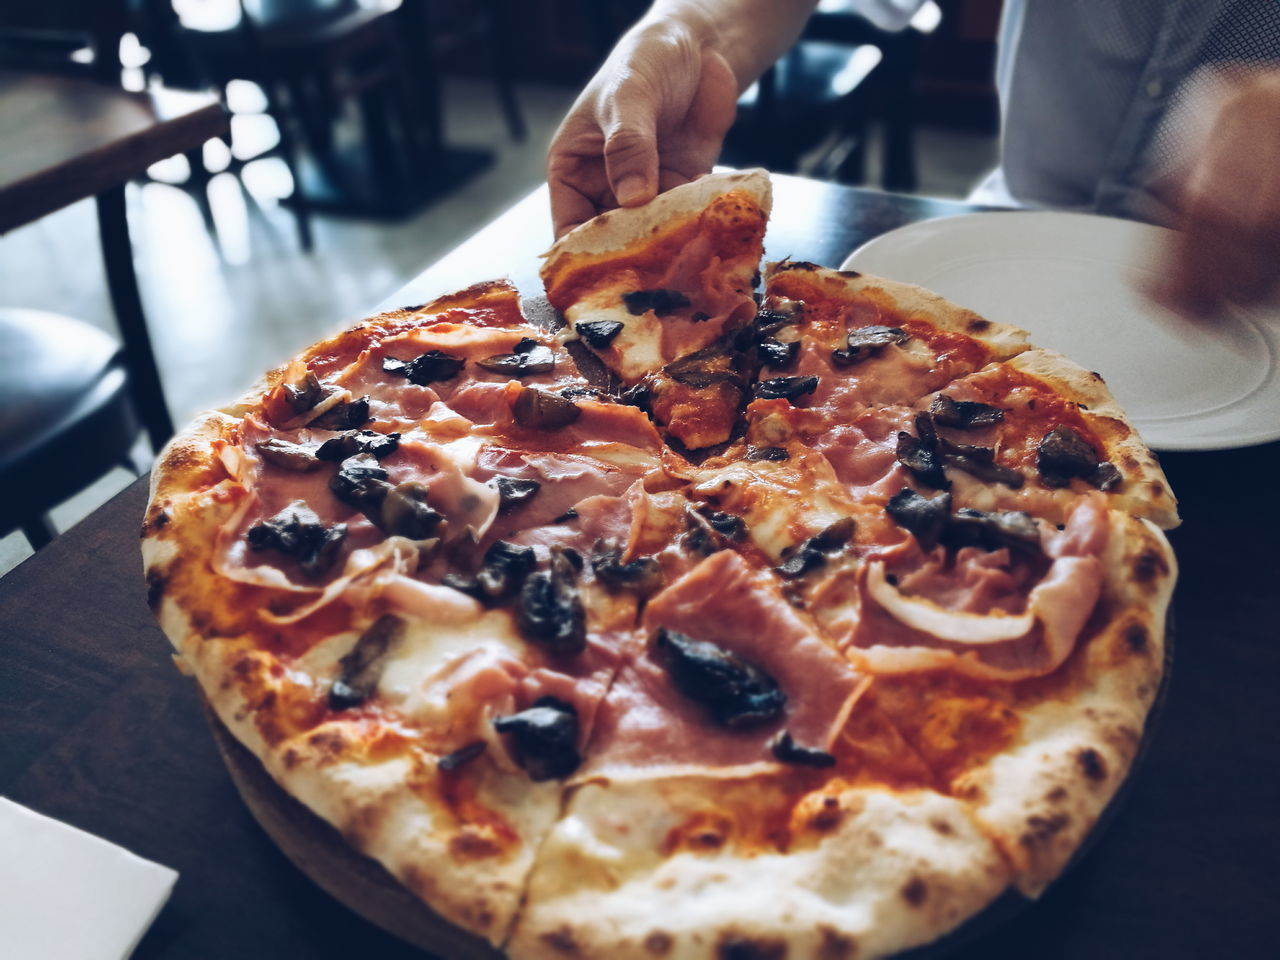 ShareTheMeal 1/8.....share Food Freshness Food And Drink Pizza Ready-to-eat Indoors  Temptation Table Human Hand Meal Snacking Savory Food Hunger Sharing  Onmytable Hands In Frame